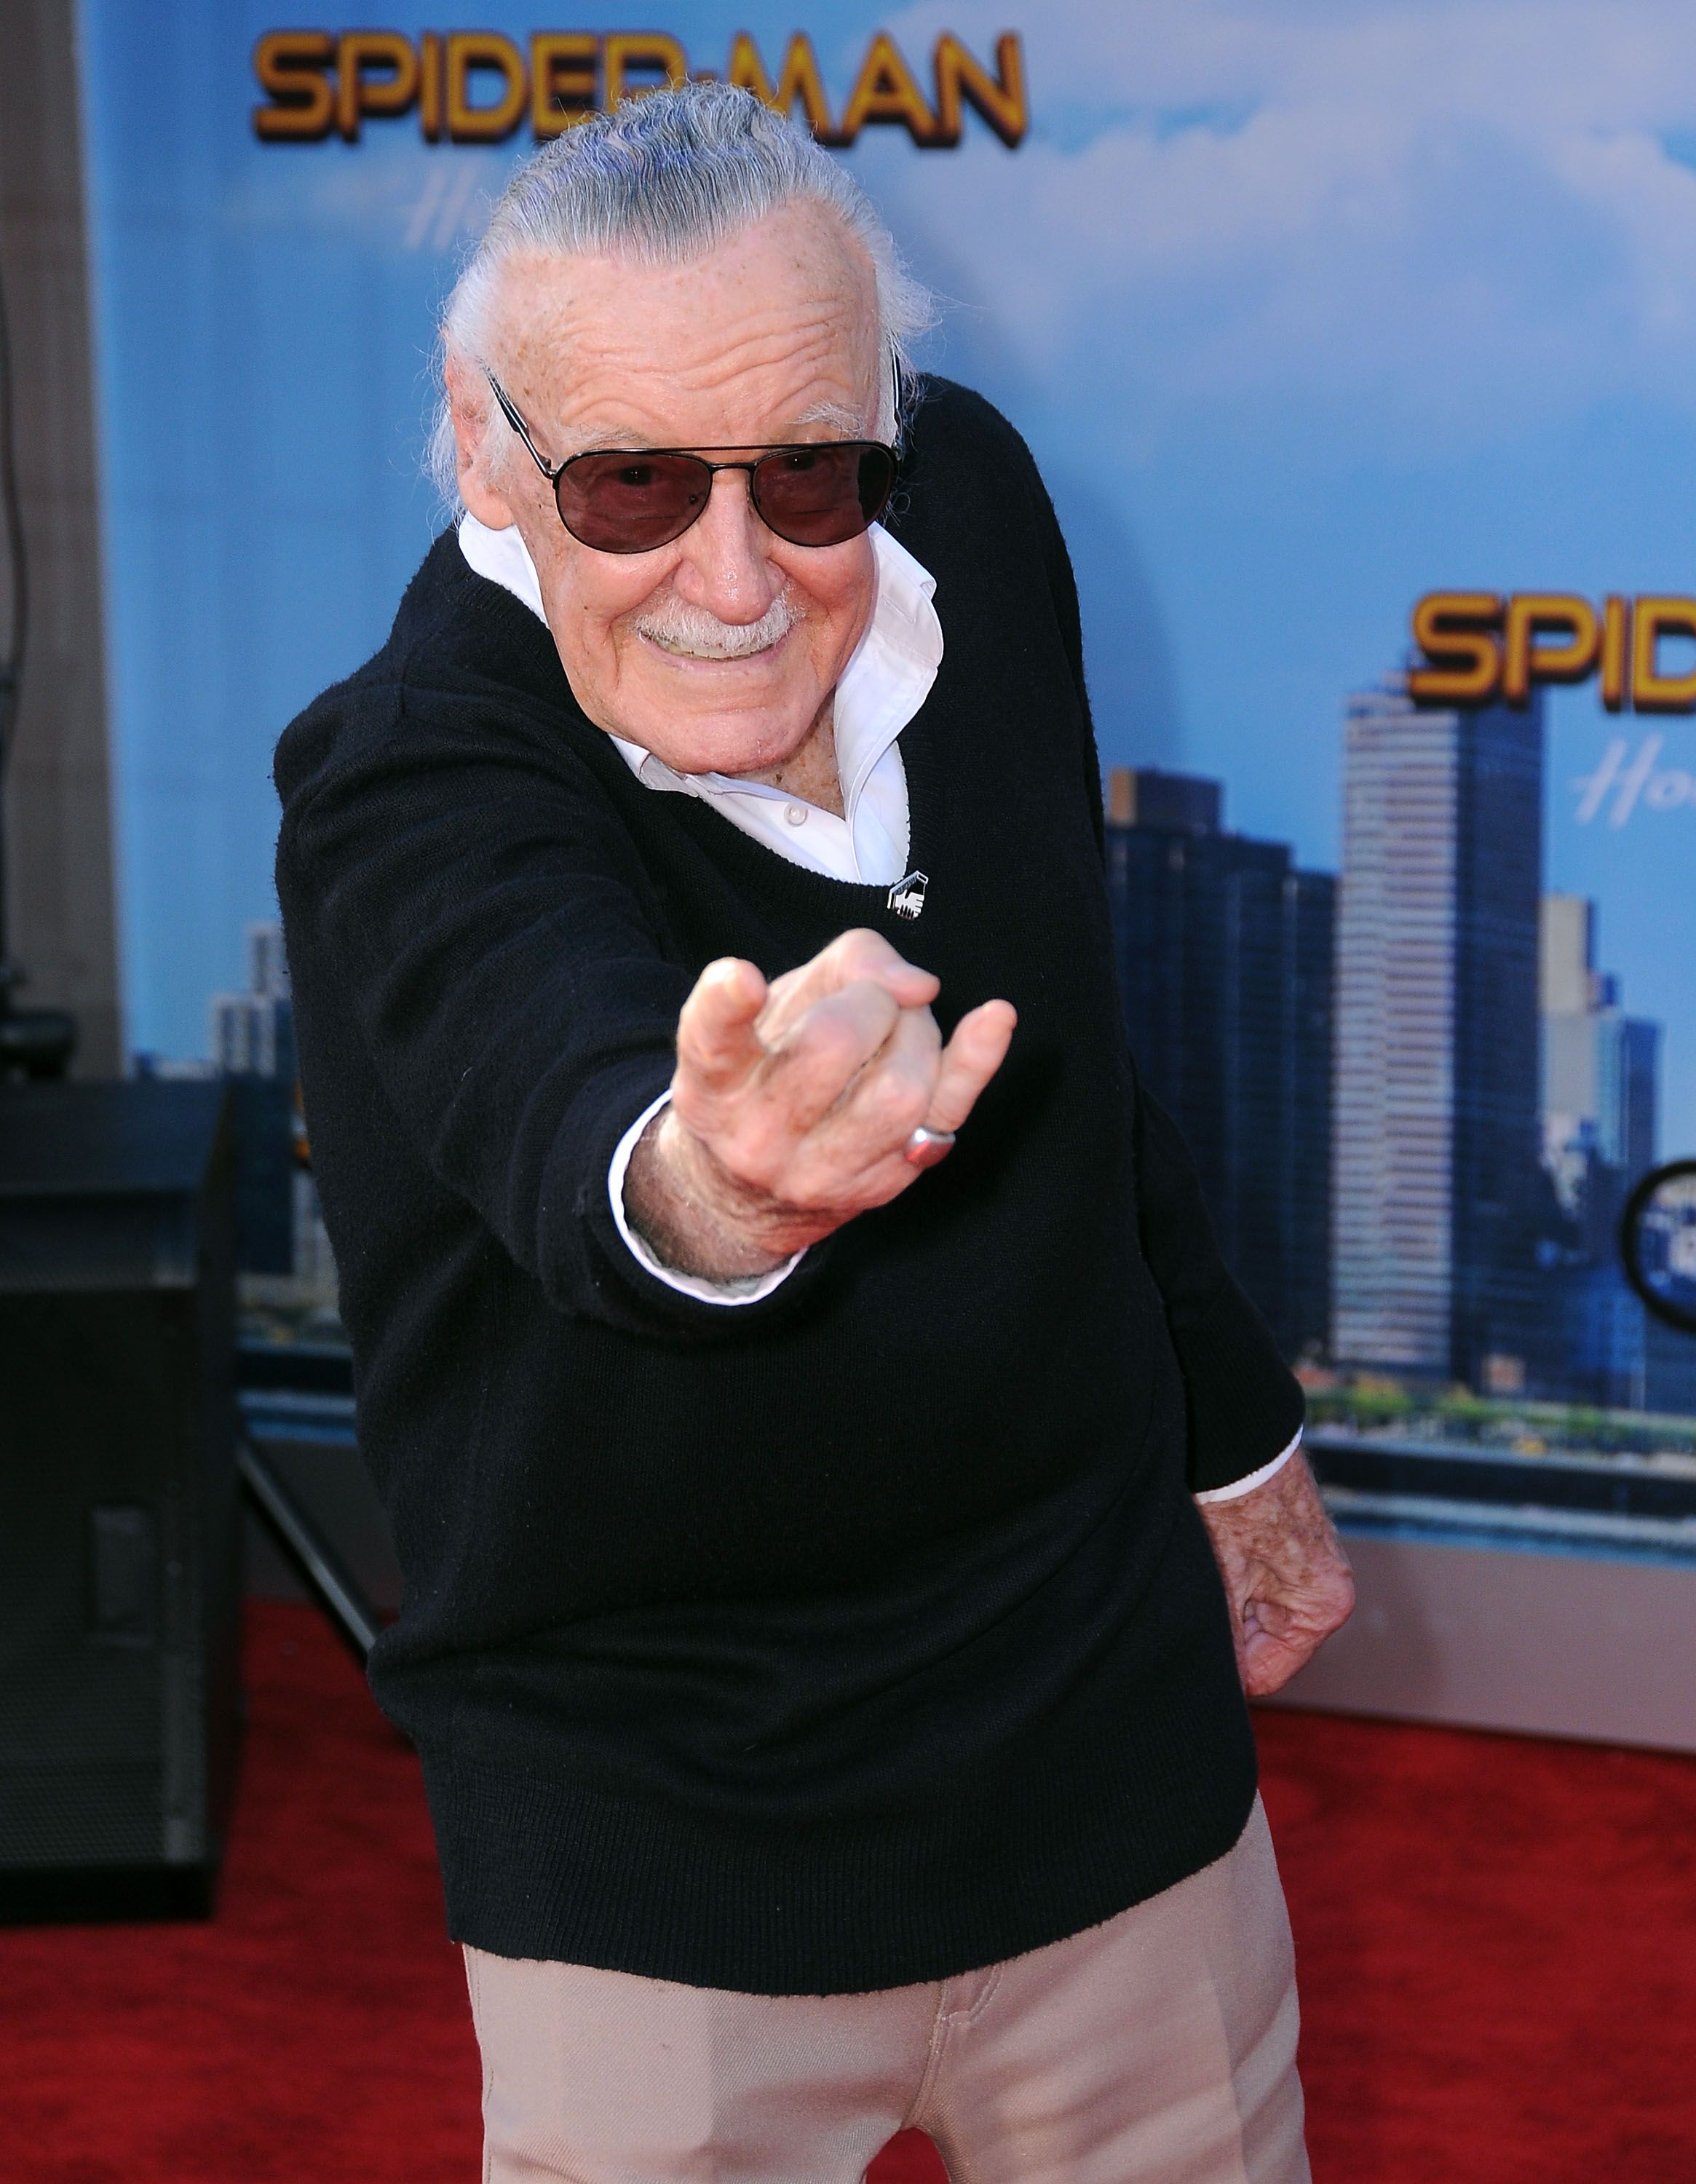 Stan Lee at the premiere of 'Spider-Man: Homecoming' at TCL Chinese Theatre on June 28, 2017 in Hollywood, California. | Source: Getty Images